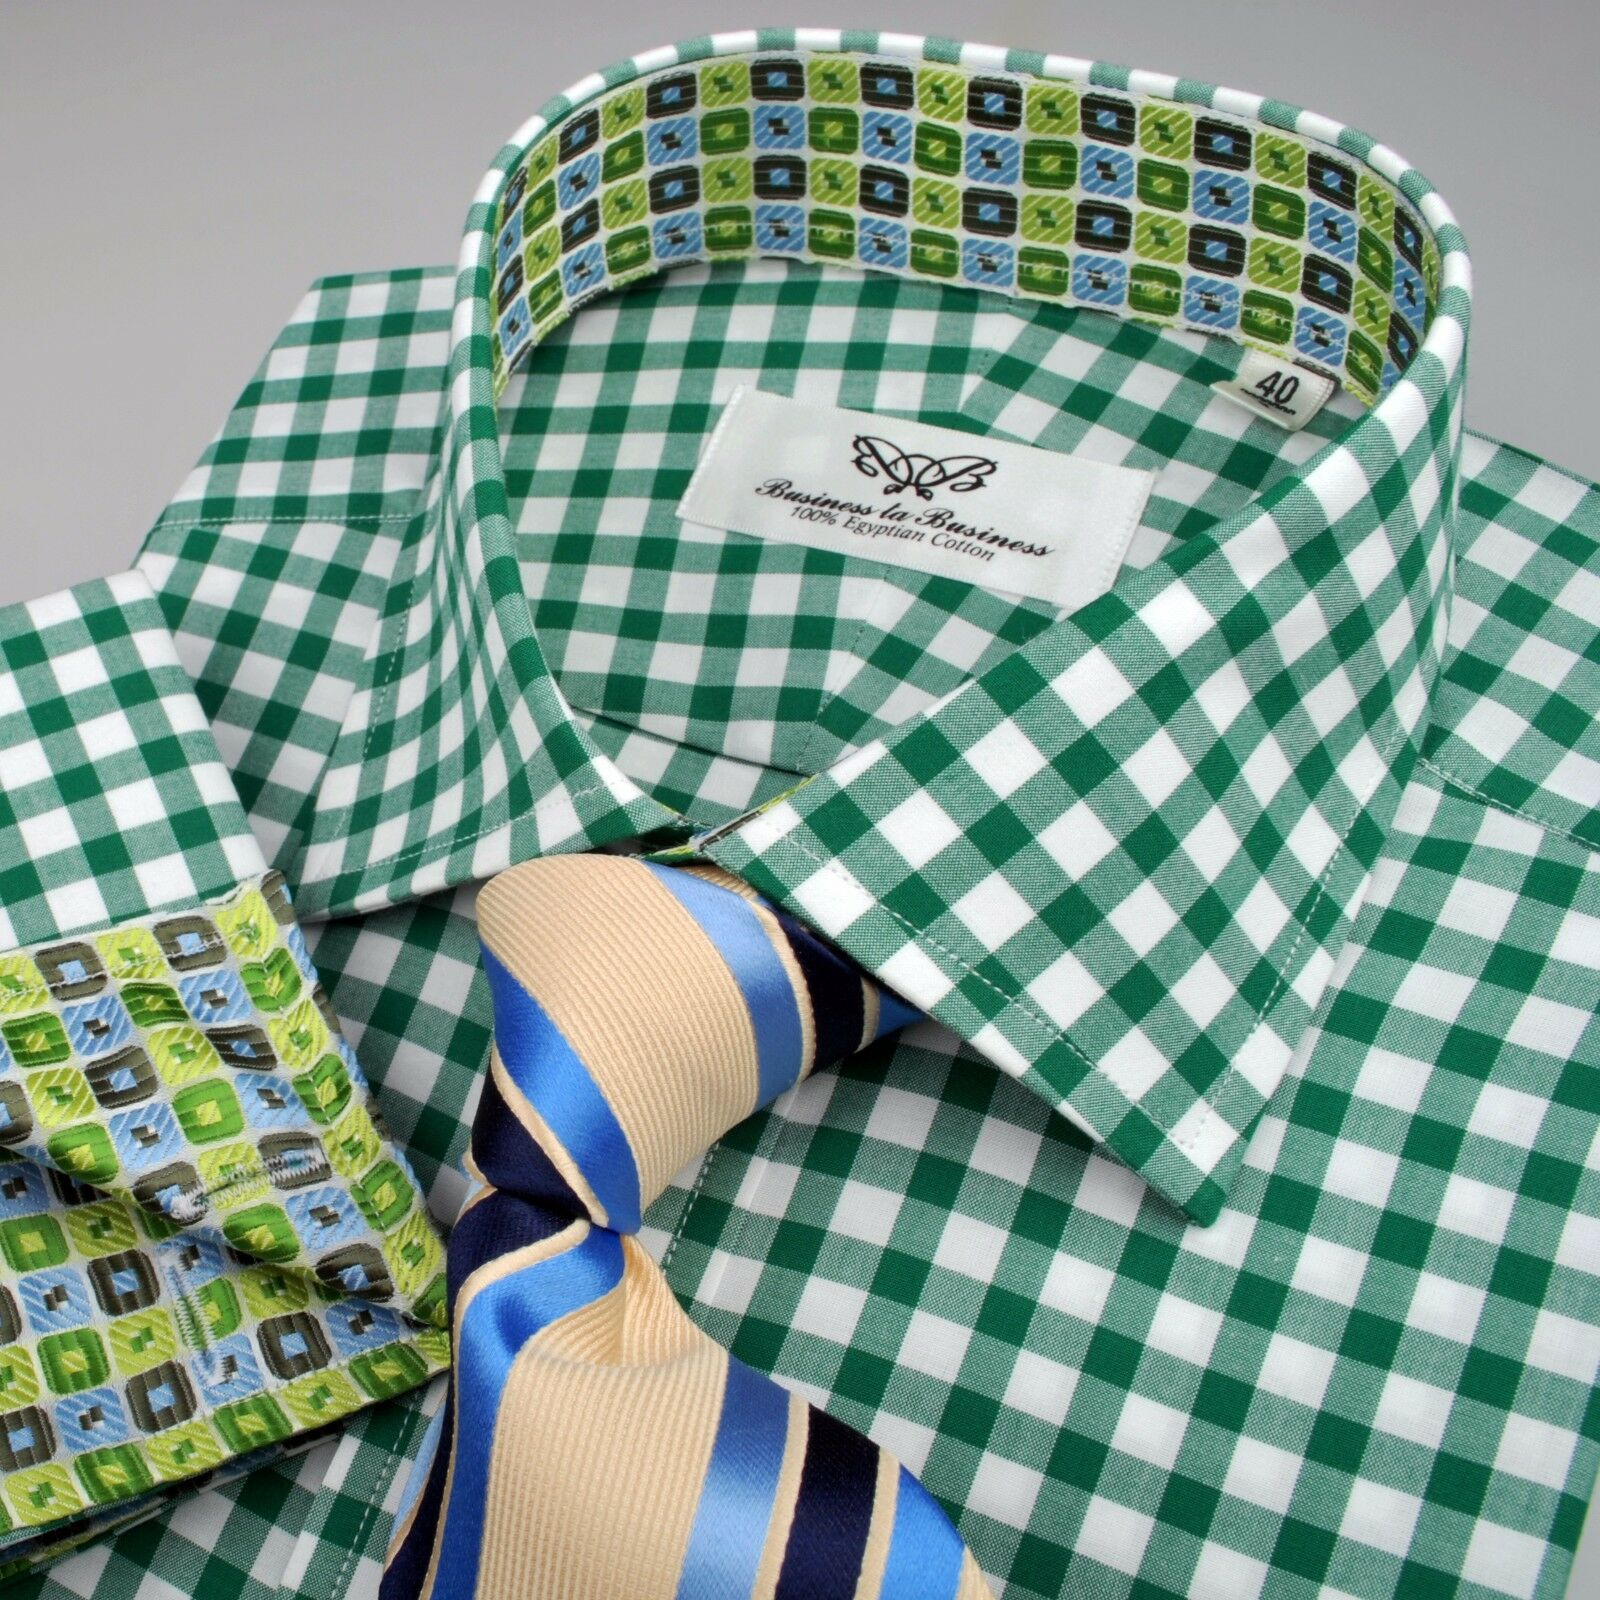 Grün Formal Geschäft Dress Shirt & Tie Combination Bundle Multi-ColouROT Plaid